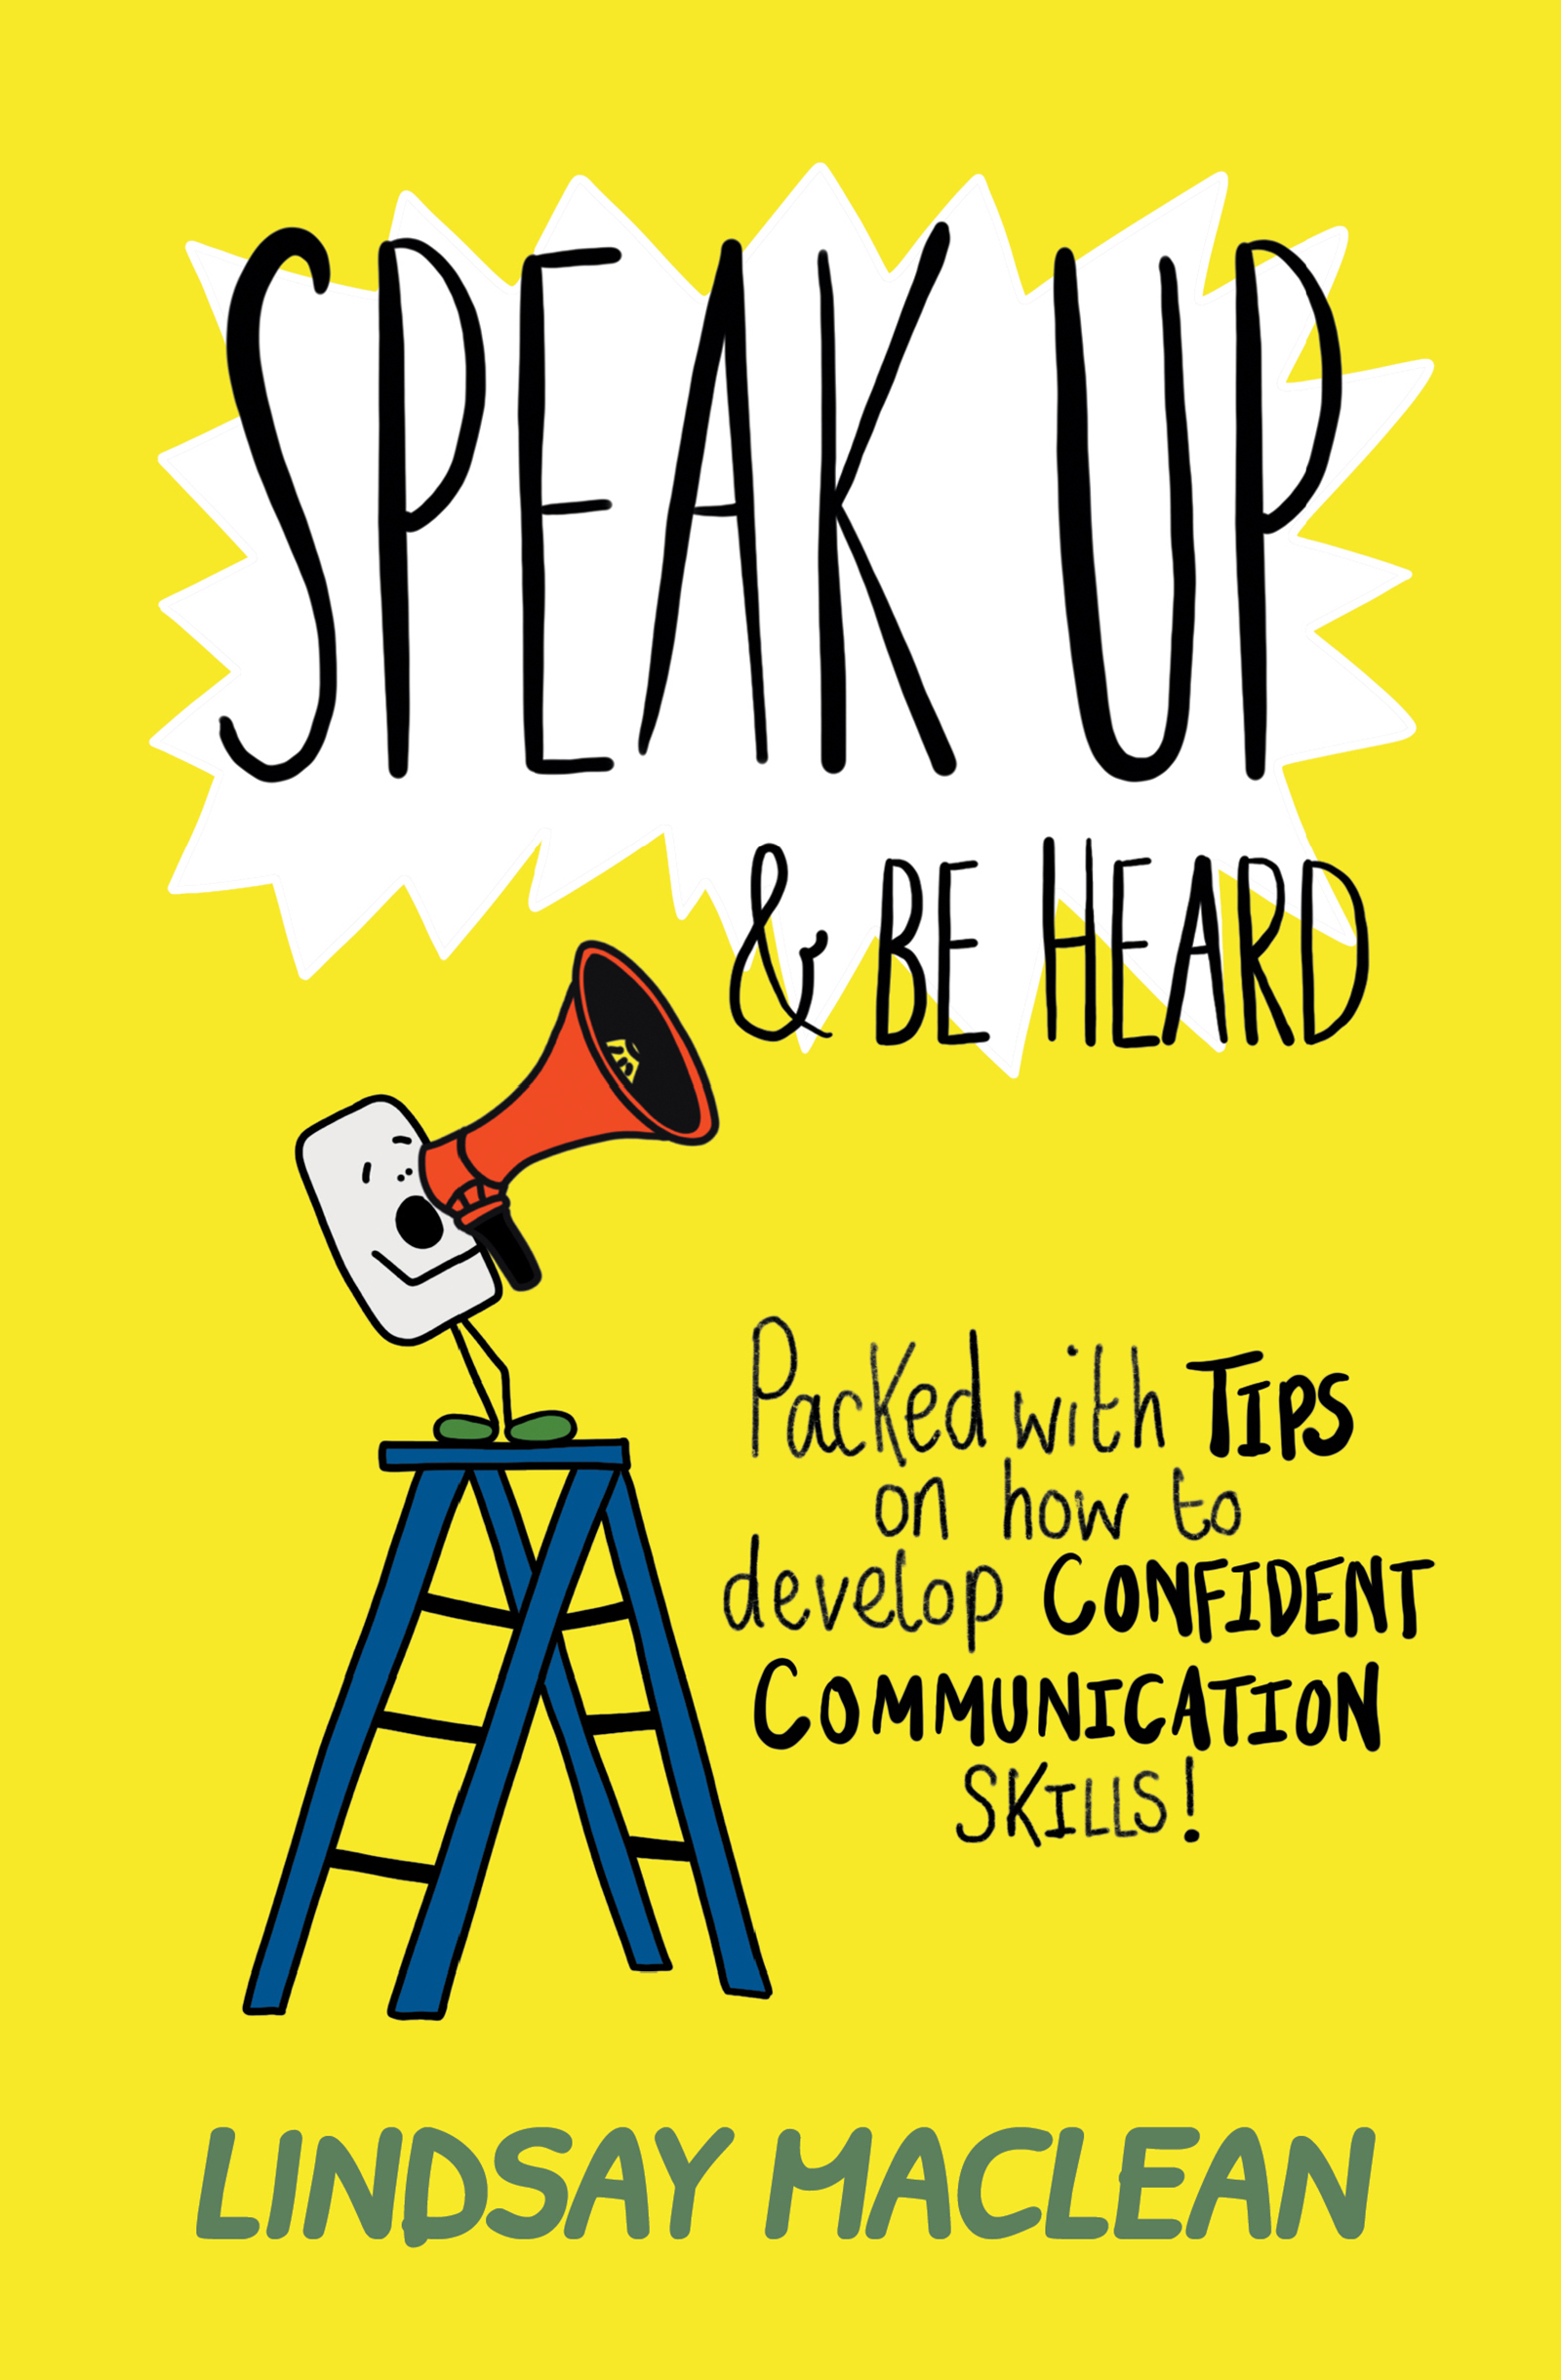 Speak Up & Be Heard